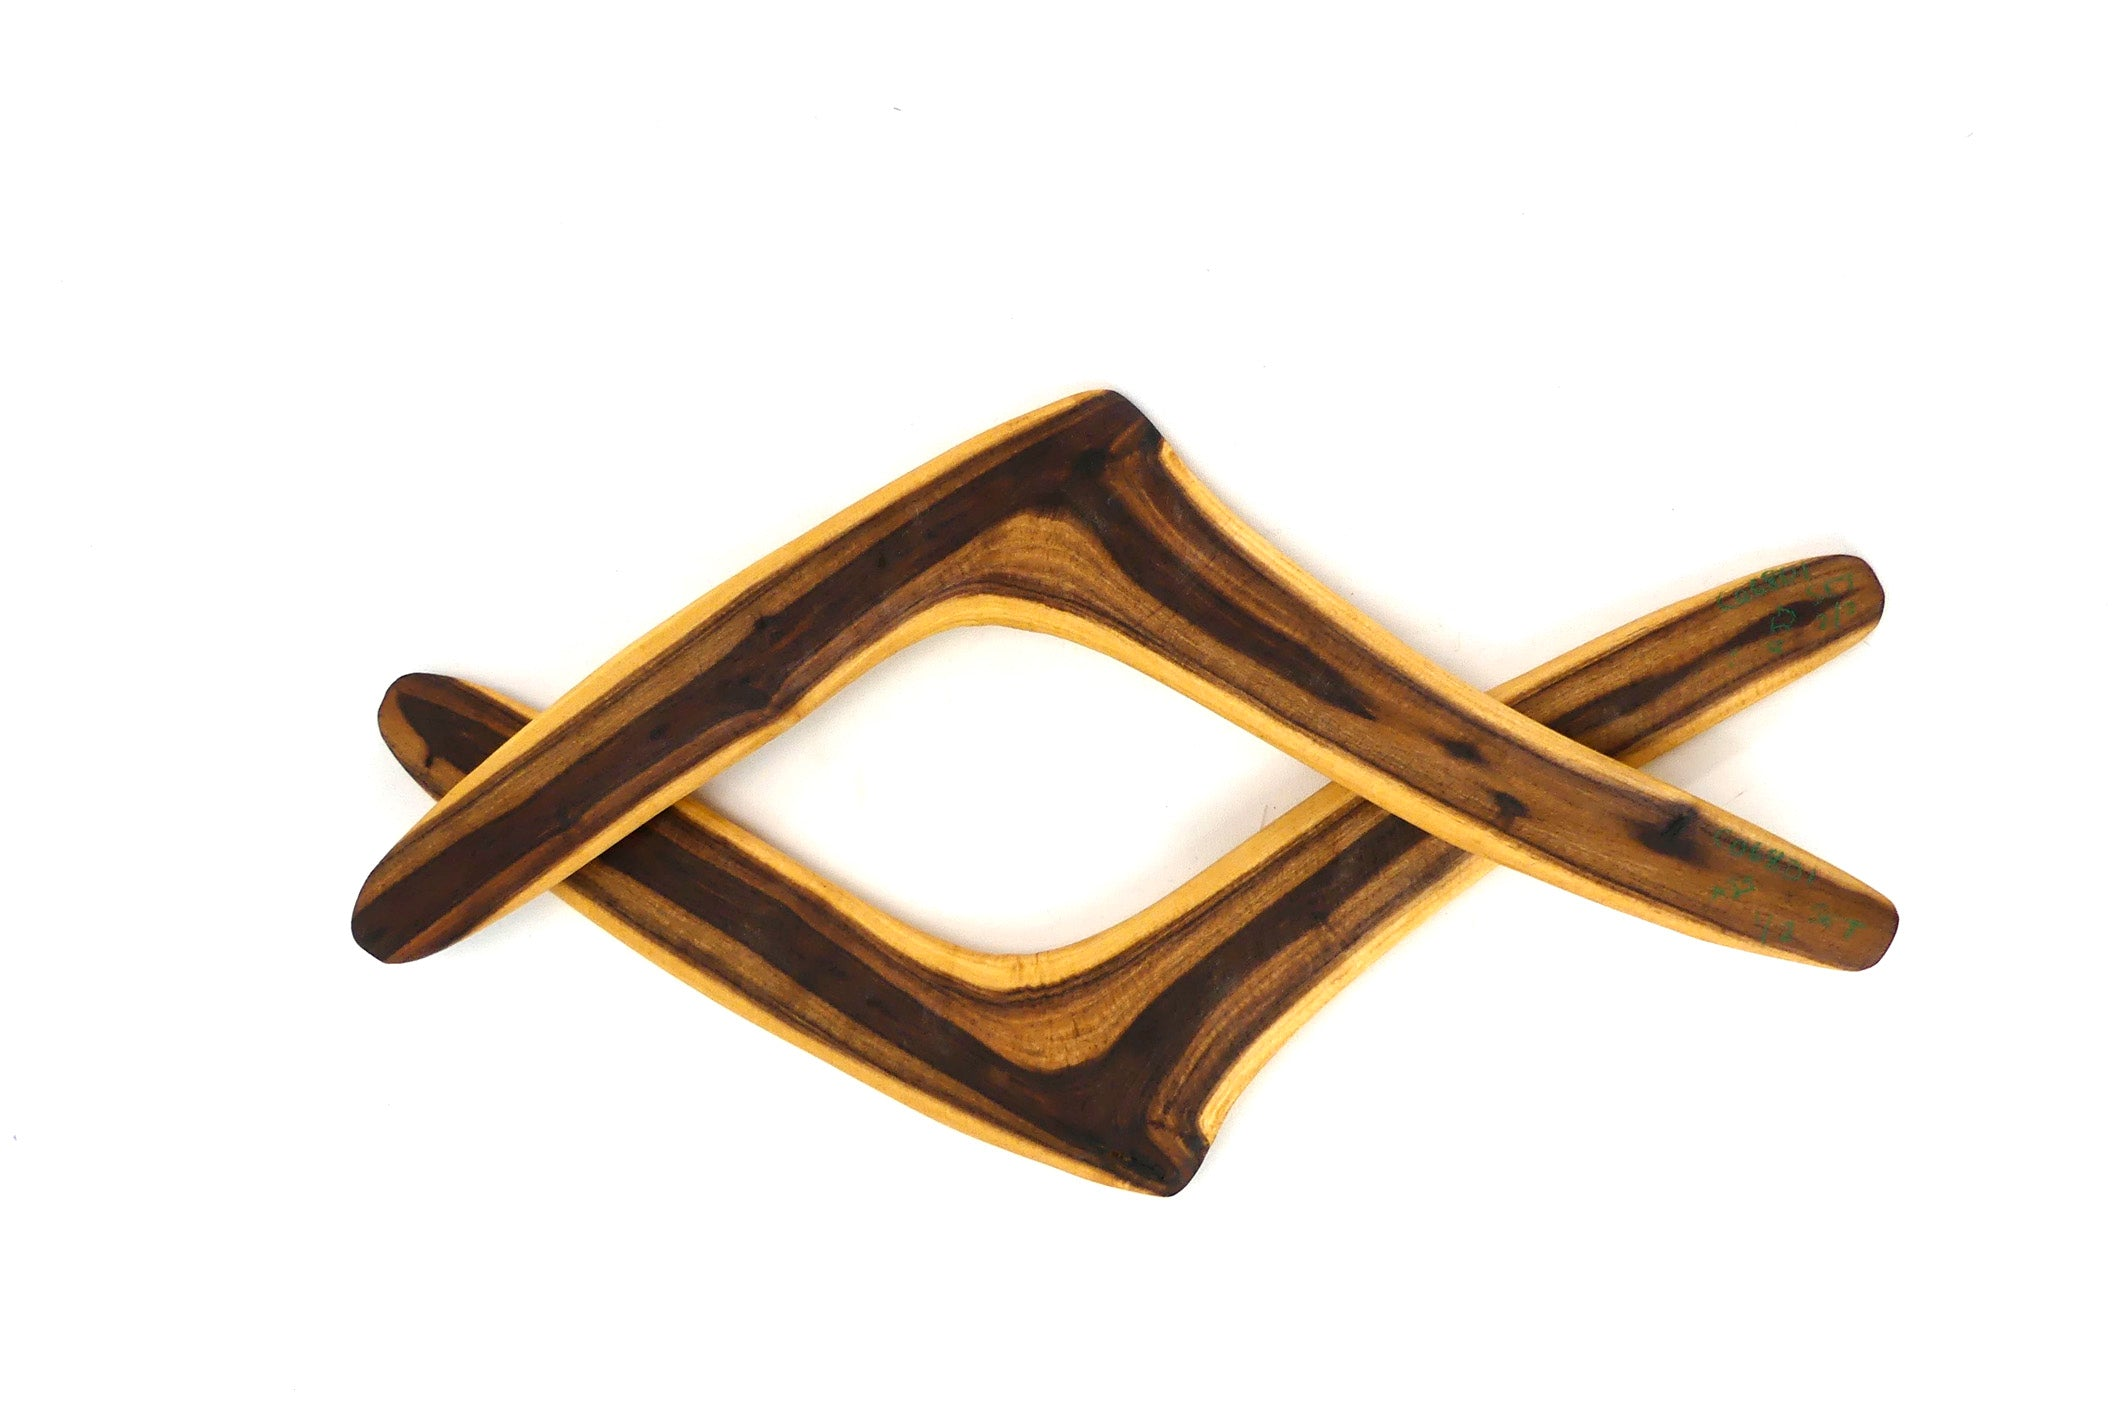 Ceremonial Kali Set of 2 (Desert Boomerang)